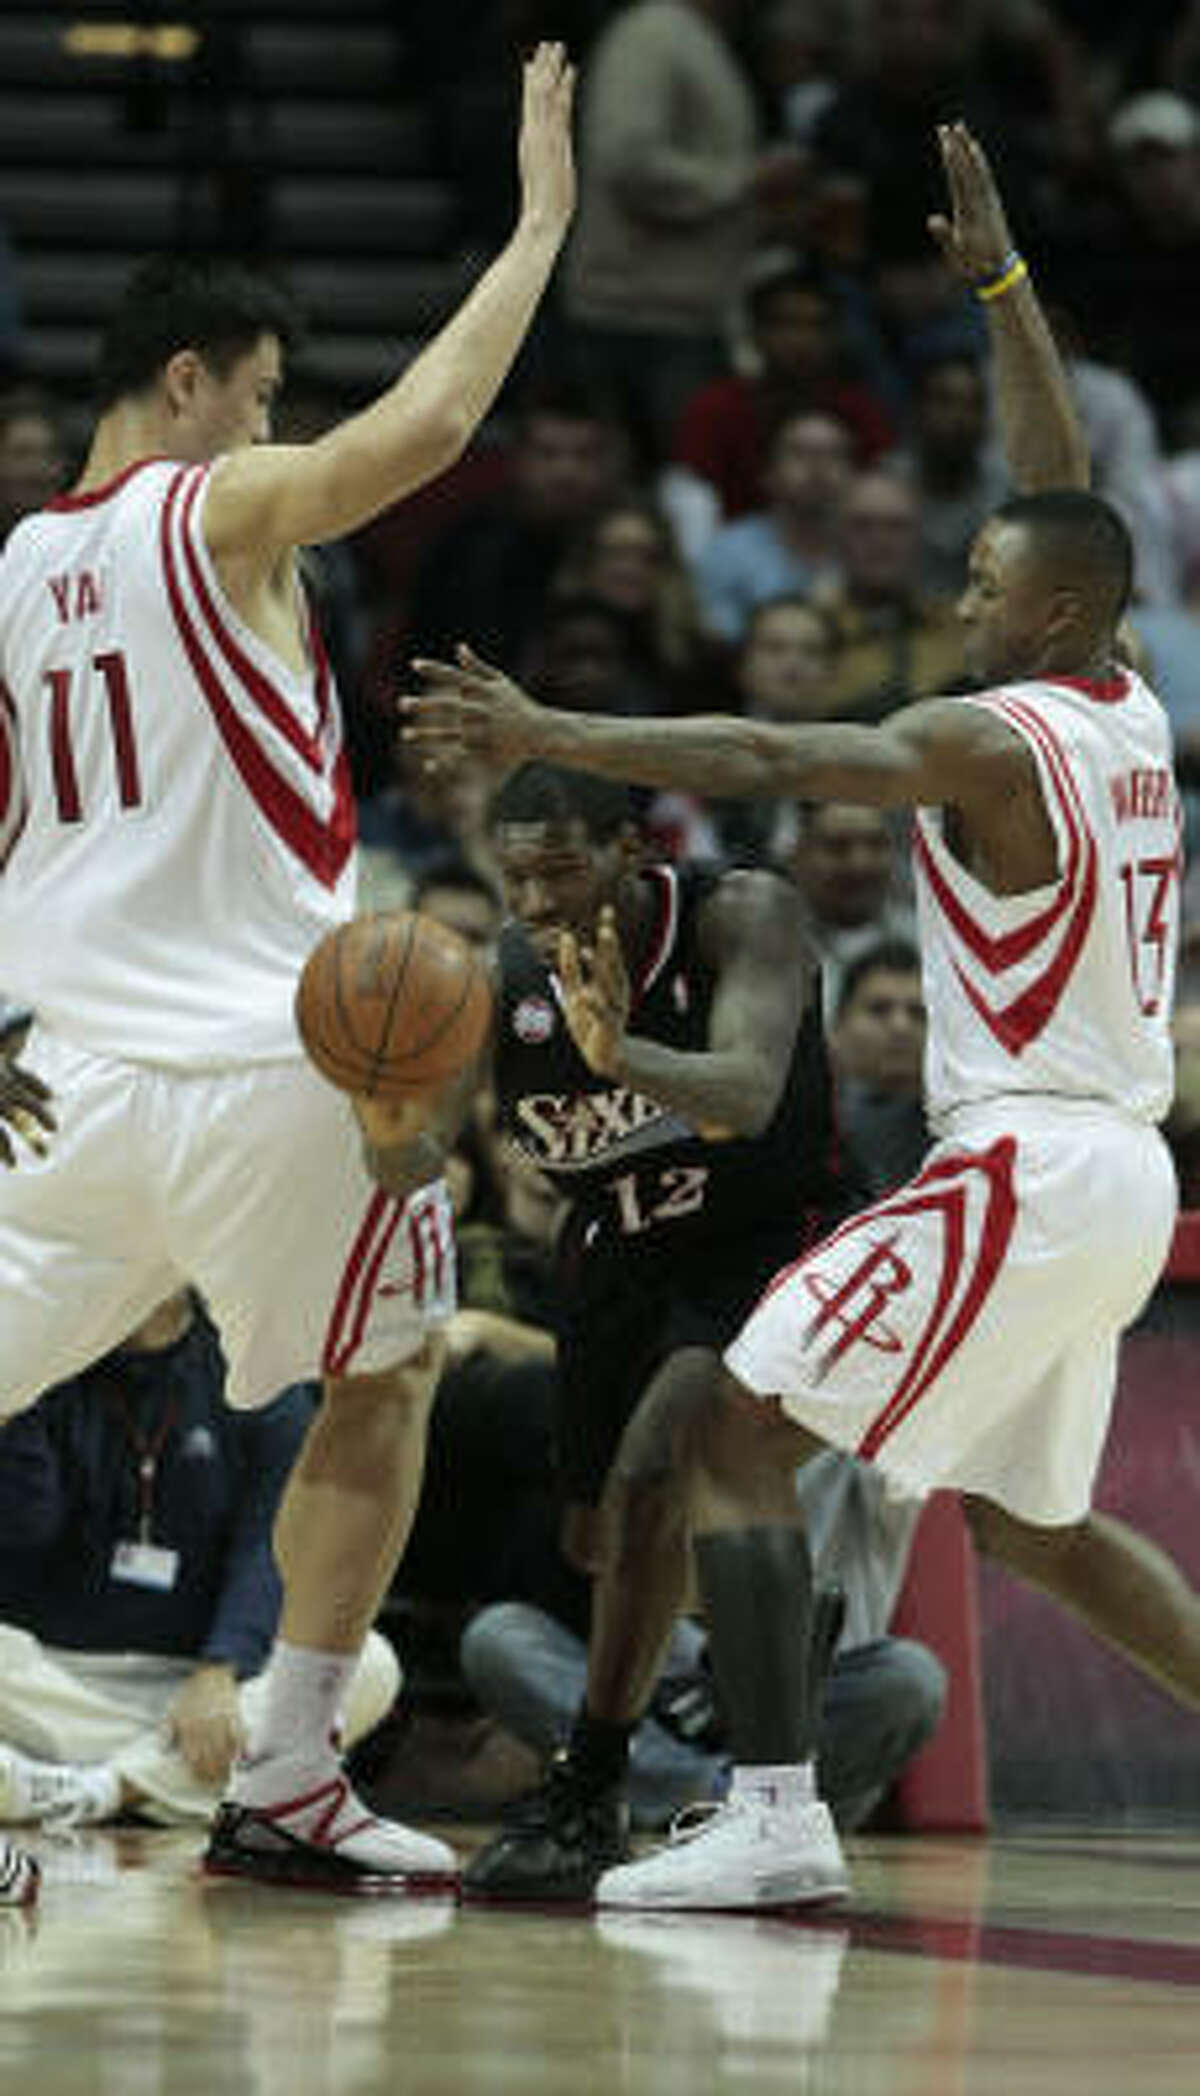 Yao Ming, from left, defends against a pass by 76ers guard Royal Ivey with support from Von Wafer in the second half.